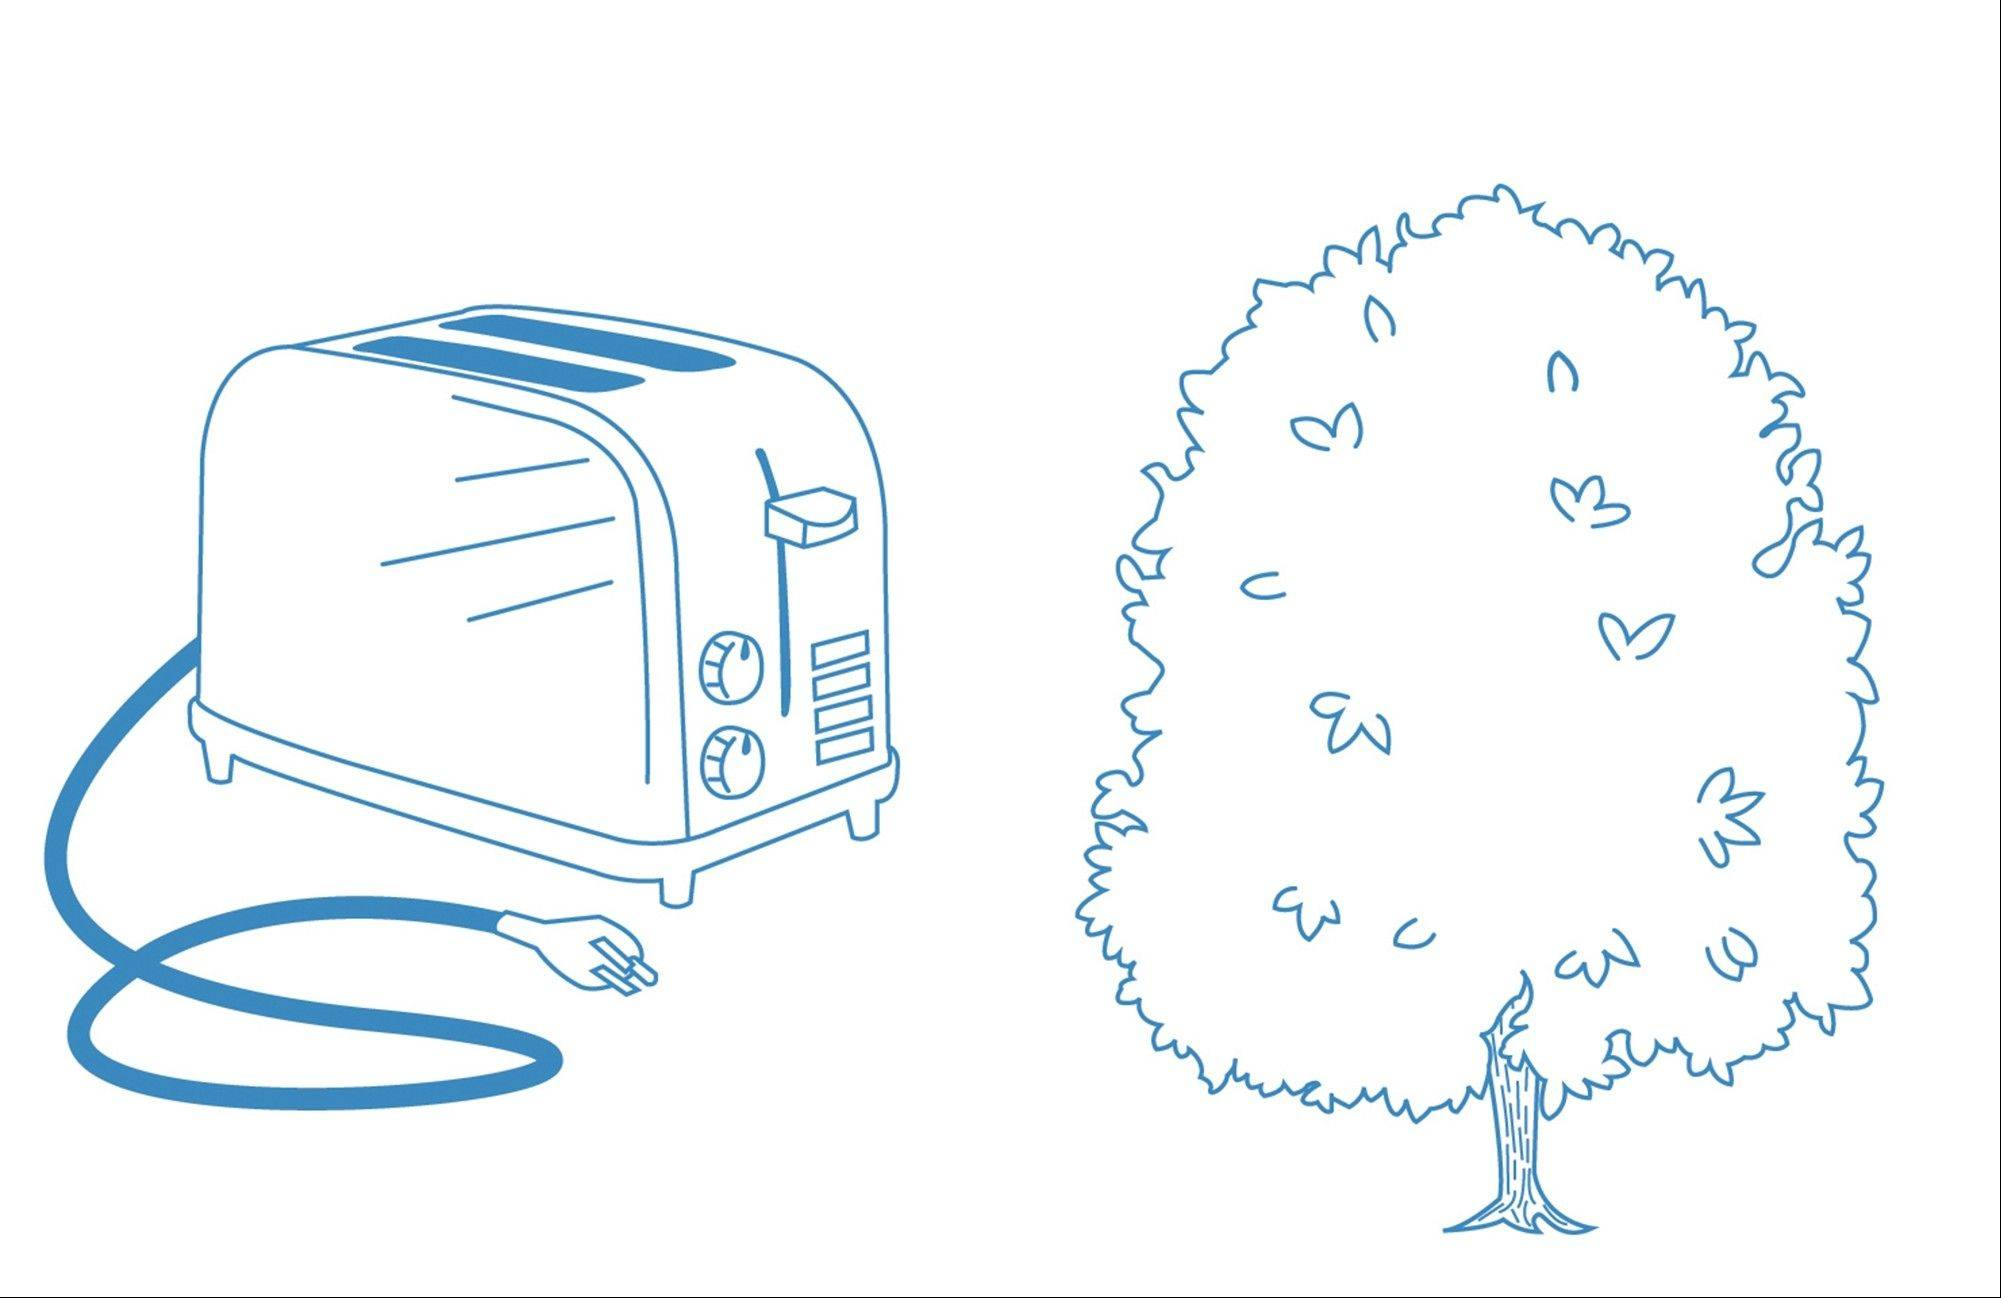 Unused appliances such as toasters can make up 10-15% of your bill (left); properly selected and planted shade trees can save up to $80 annually on the average electric bill (right). Sources: EPA and Pepco.